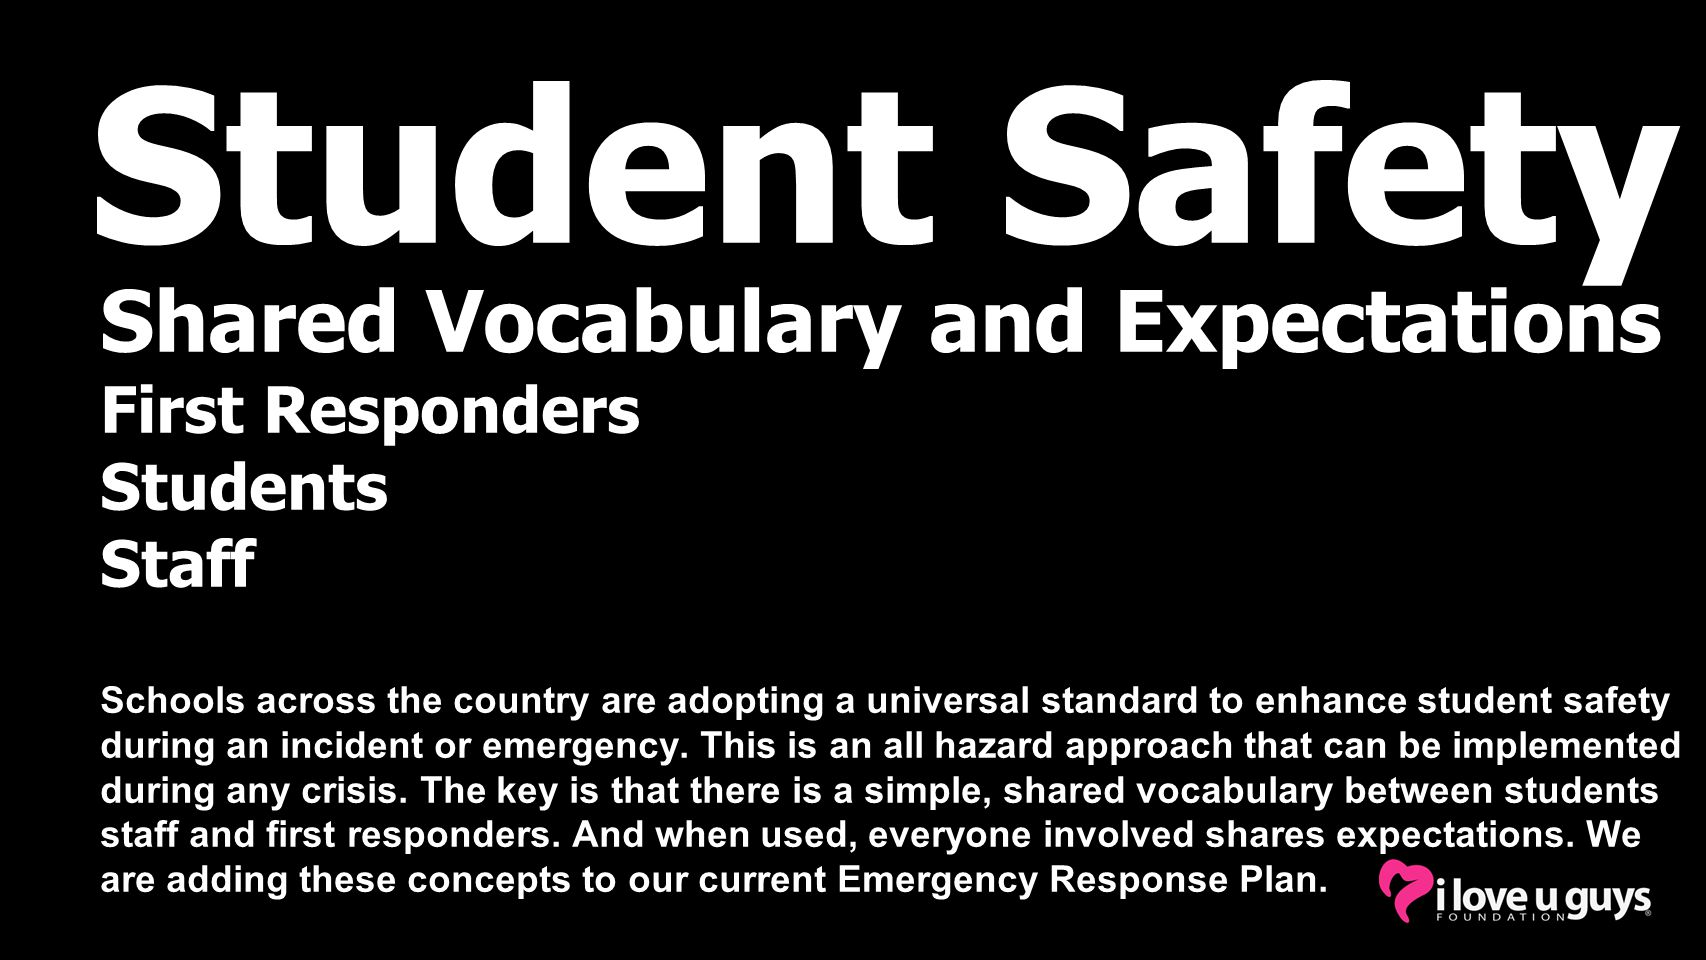 Student Safety Shared Vocabulary and Expectations First Responders Students Staff Schools across the country are adopting a universal standard to enhance student safety during an incident or emergency.